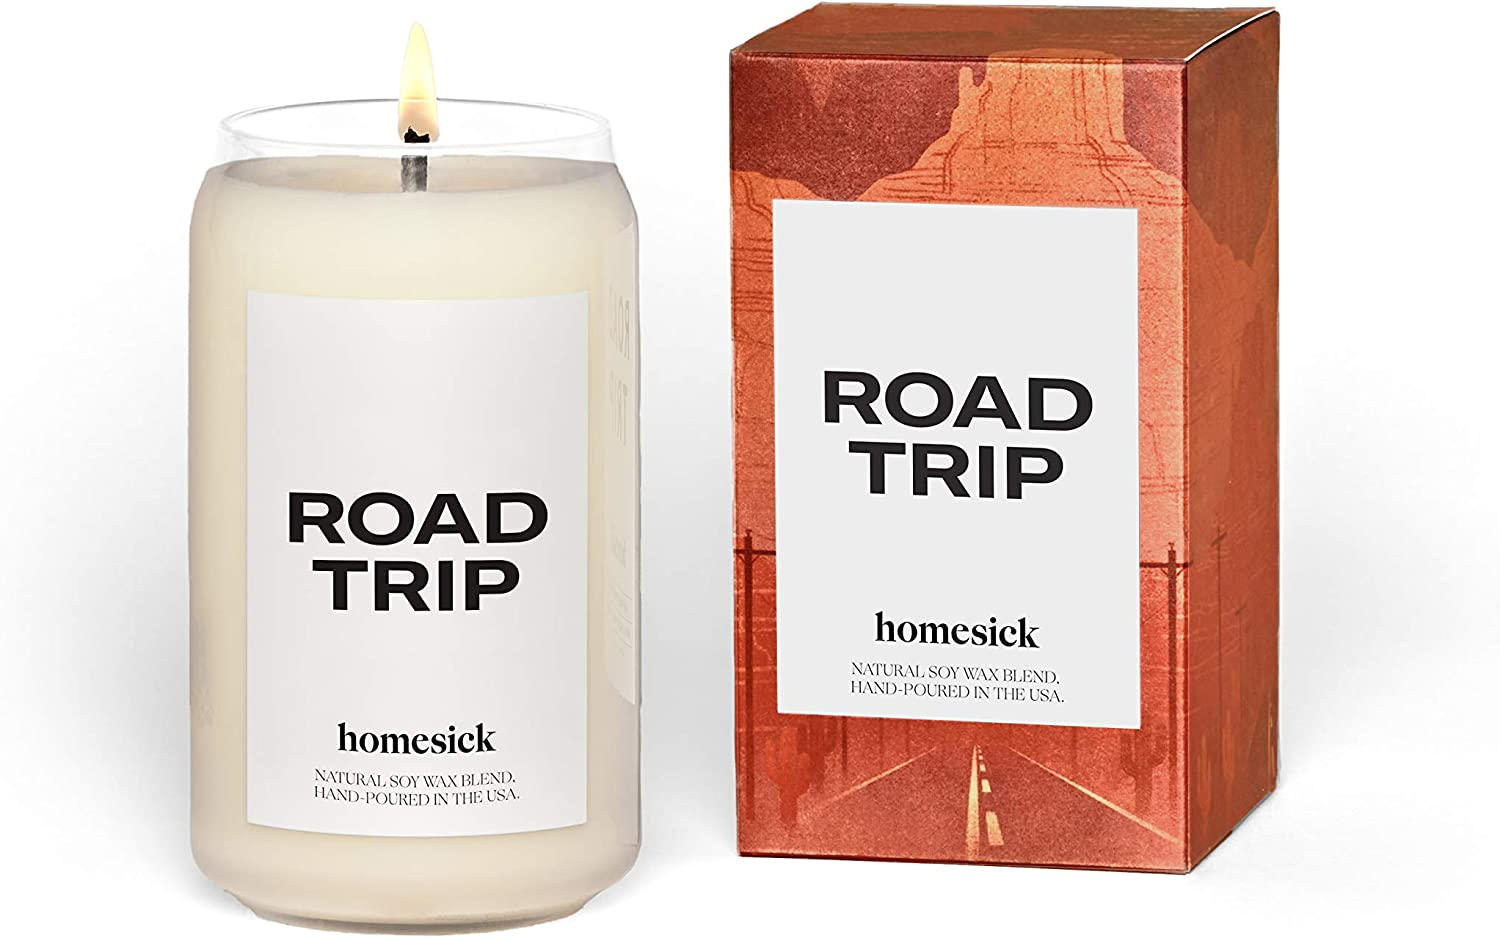 Homesick Scented Candle, Road Trip - Scents of Lime, Leather, Marine, 13.75 oz